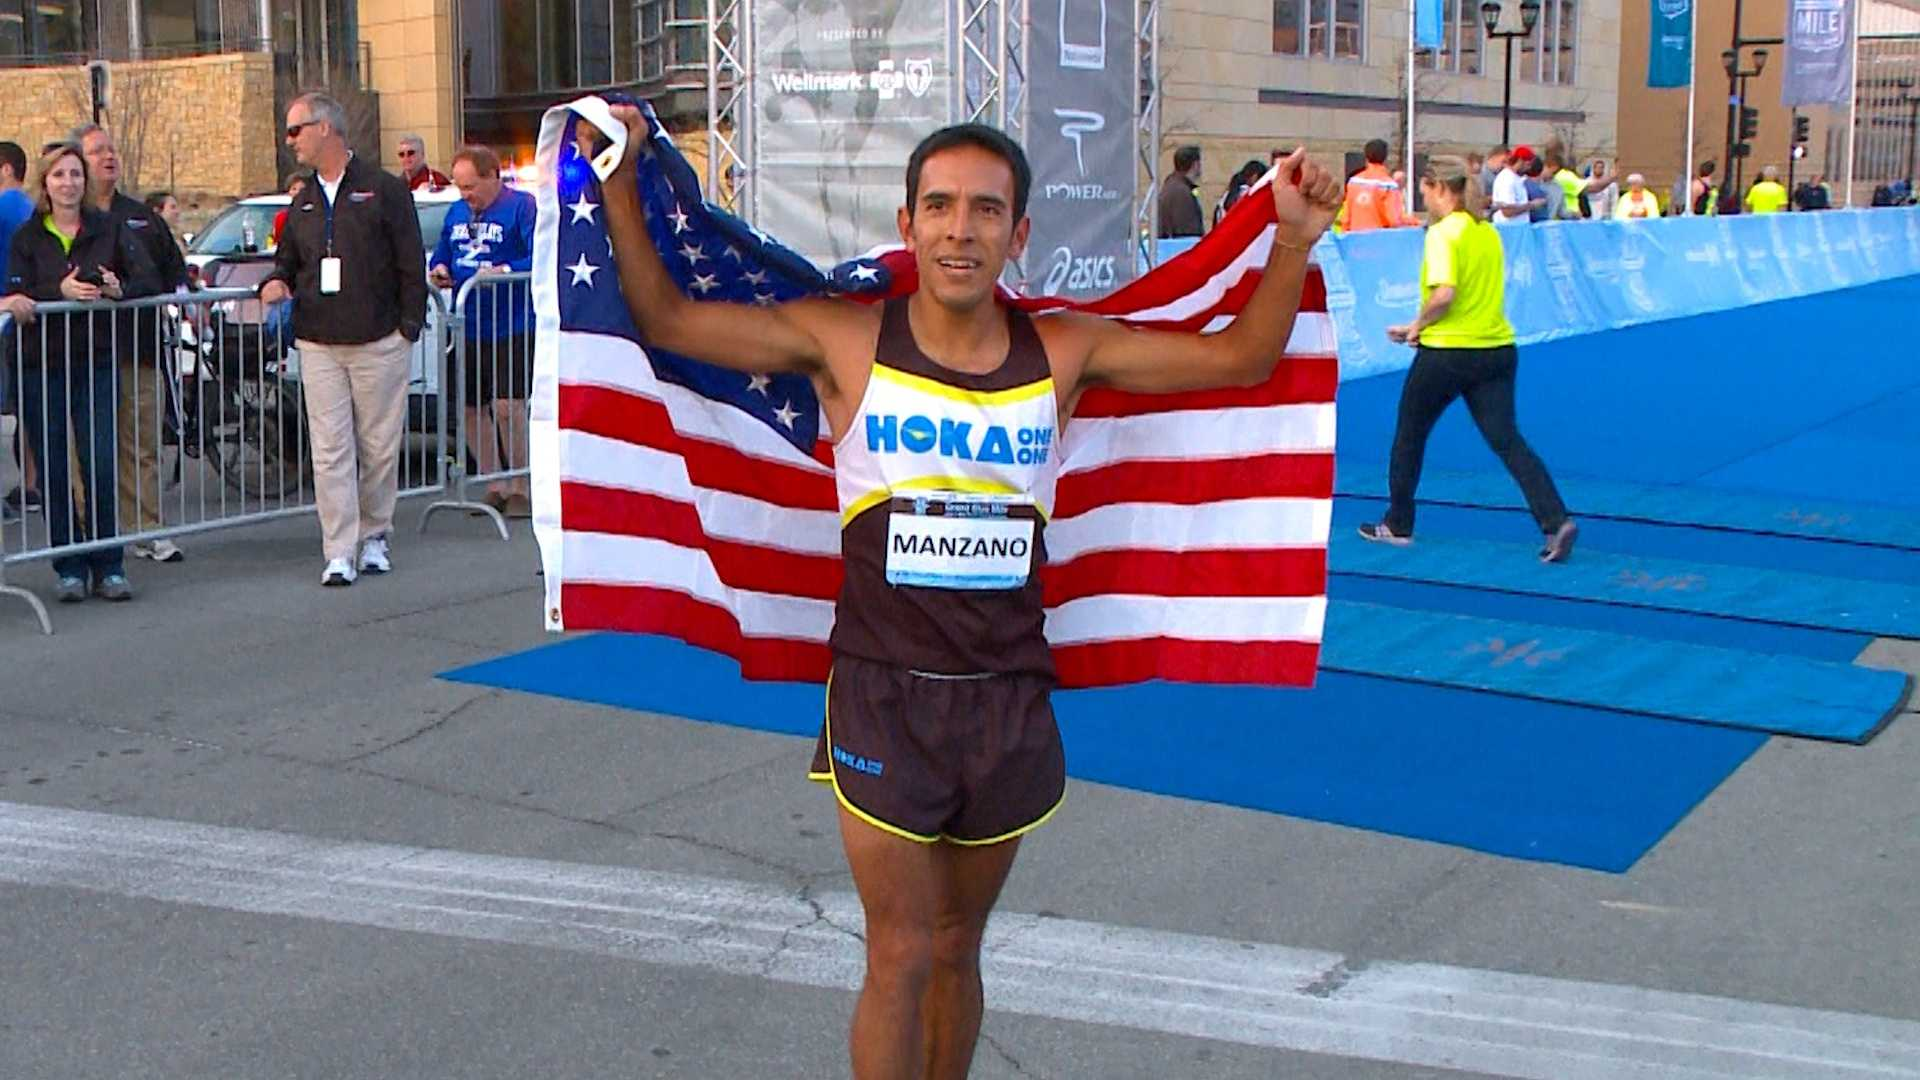 Leo Manzano celebrates after winning the 2014 USA 1-Mile Road Championship in Des Moines.